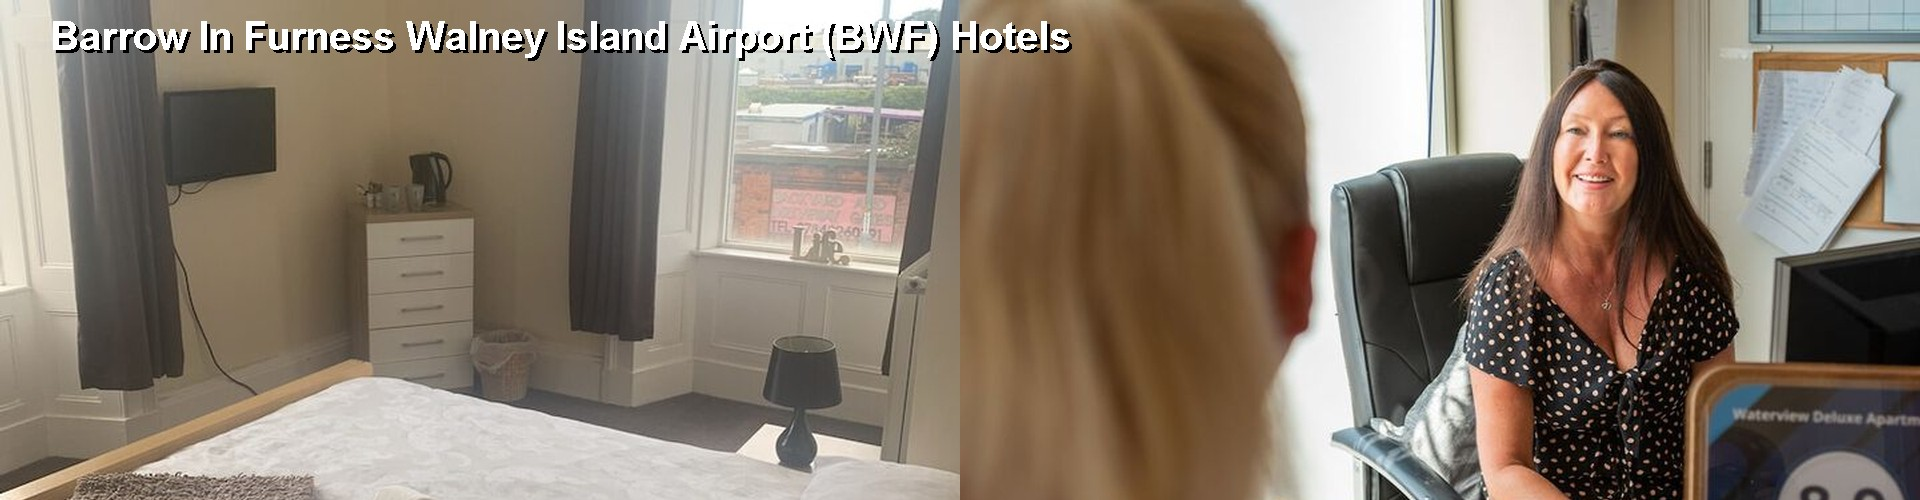 5 Best Hotels near Barrow In Furness Walney Island Airport (BWF)